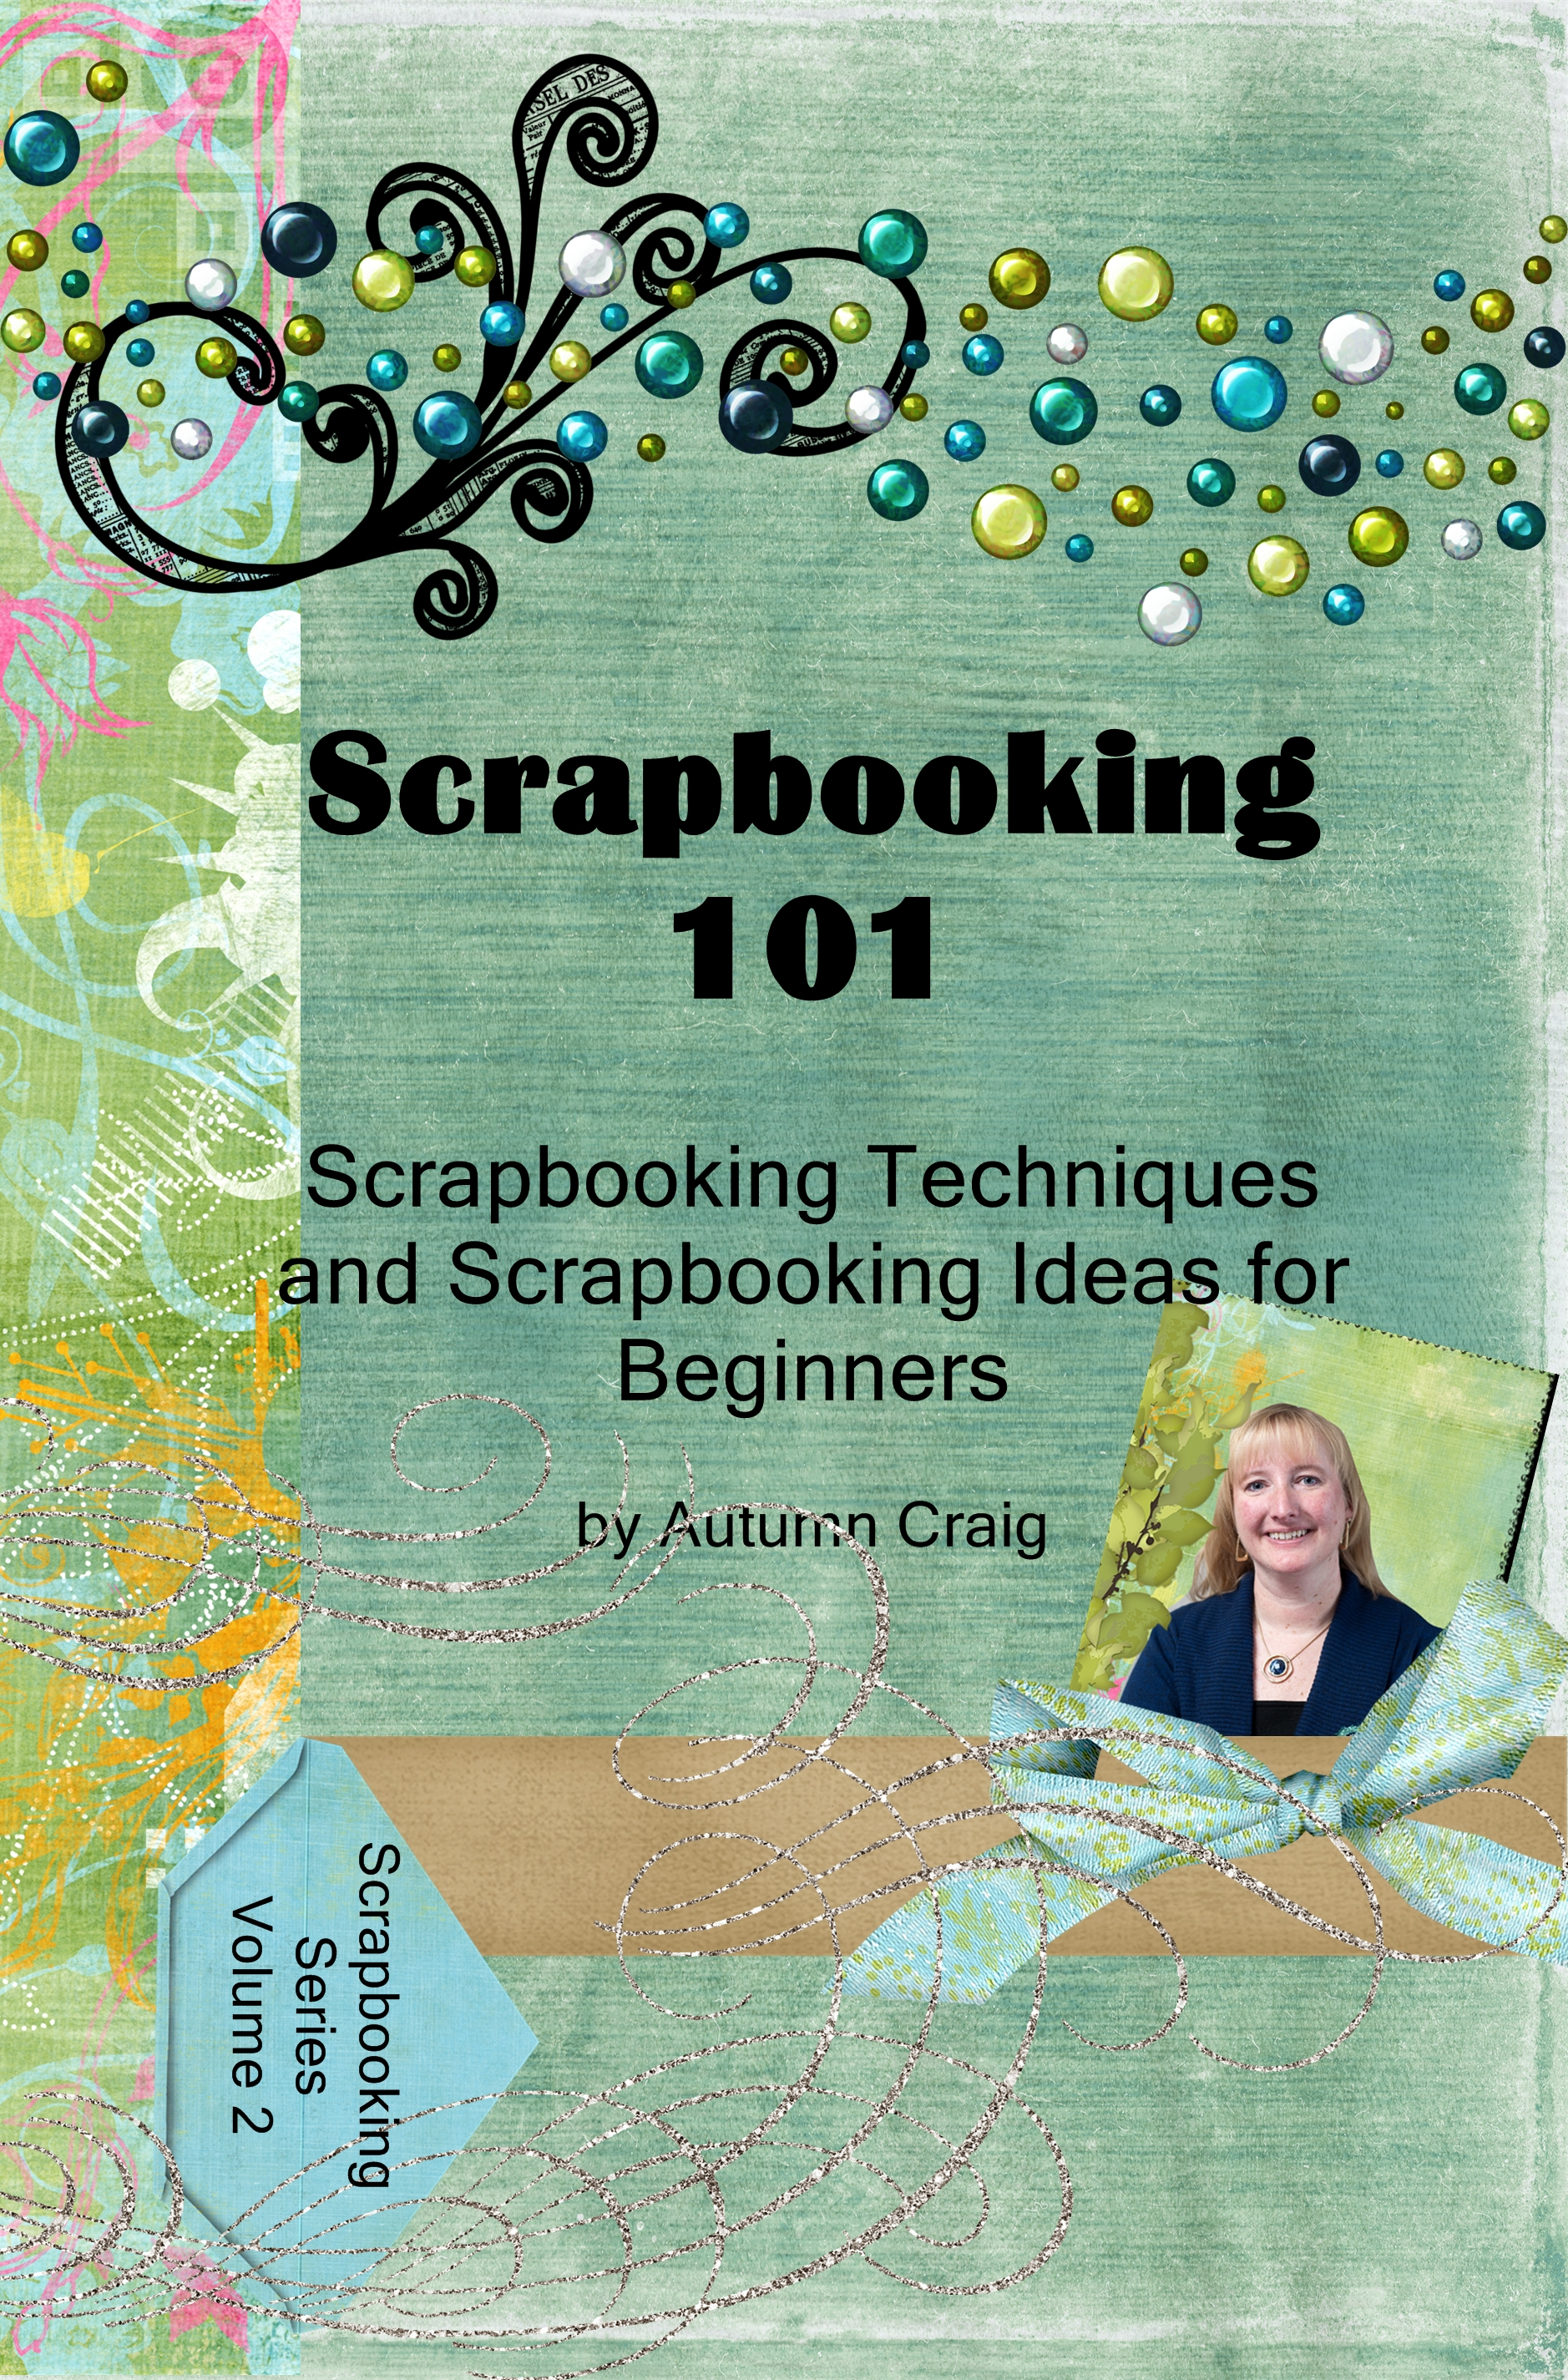 scrapbooking 101 cover